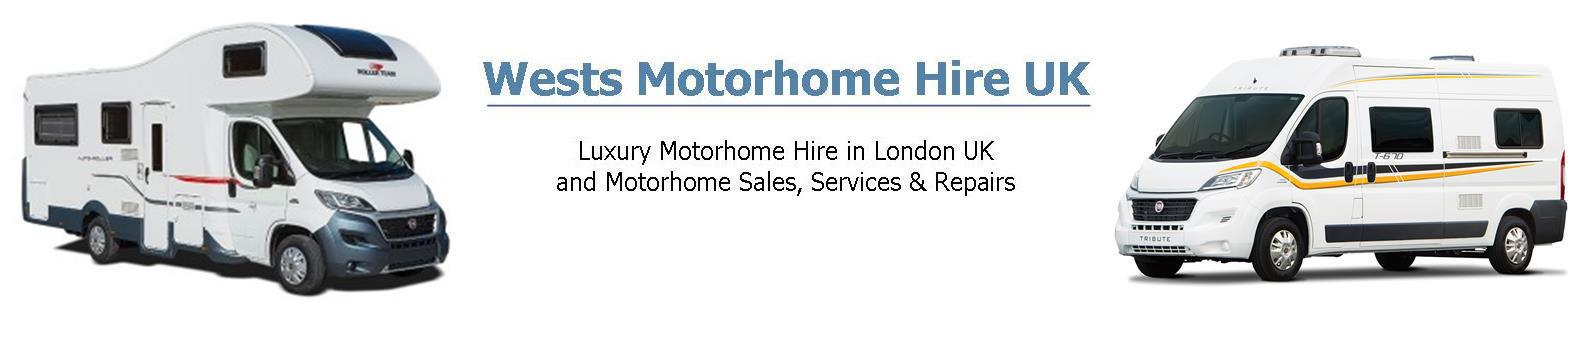 Wests Motorhome Hire UK London